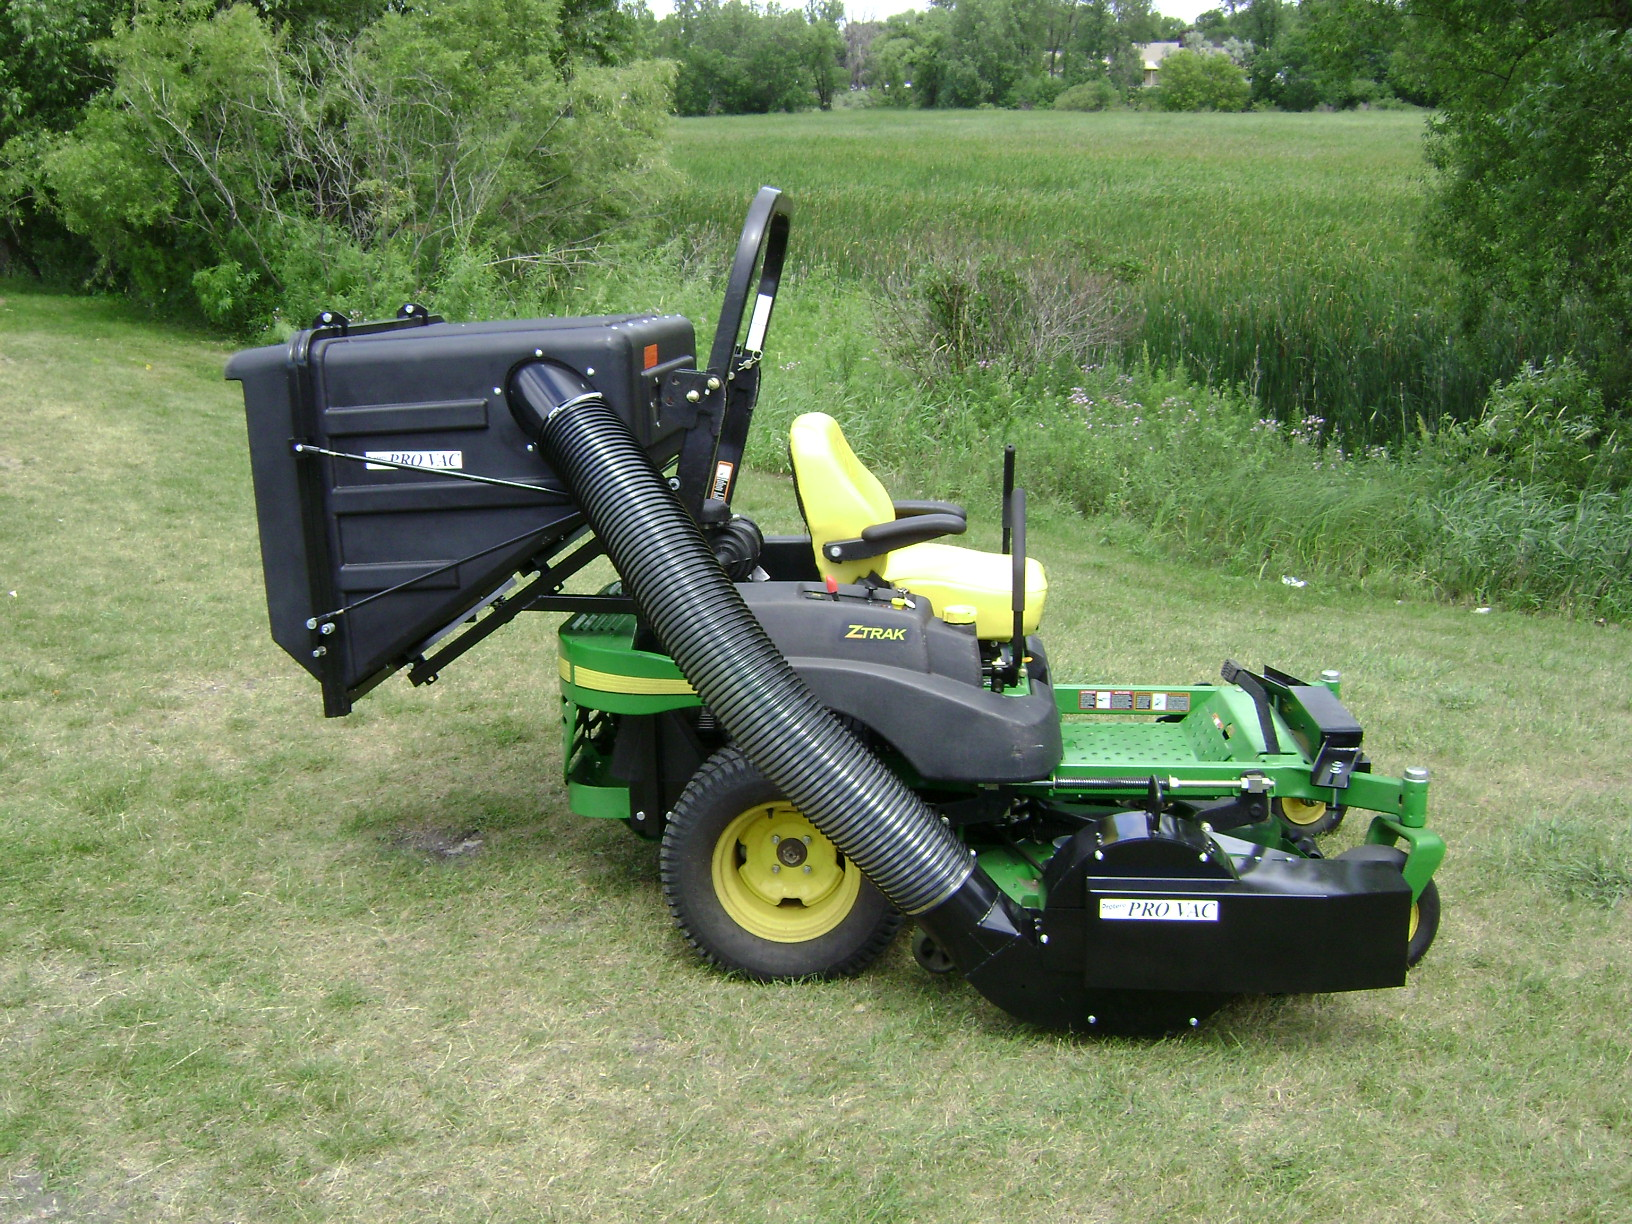 Lawn Bagger For Zero Turn Mowers Pv 18 Protero Inc